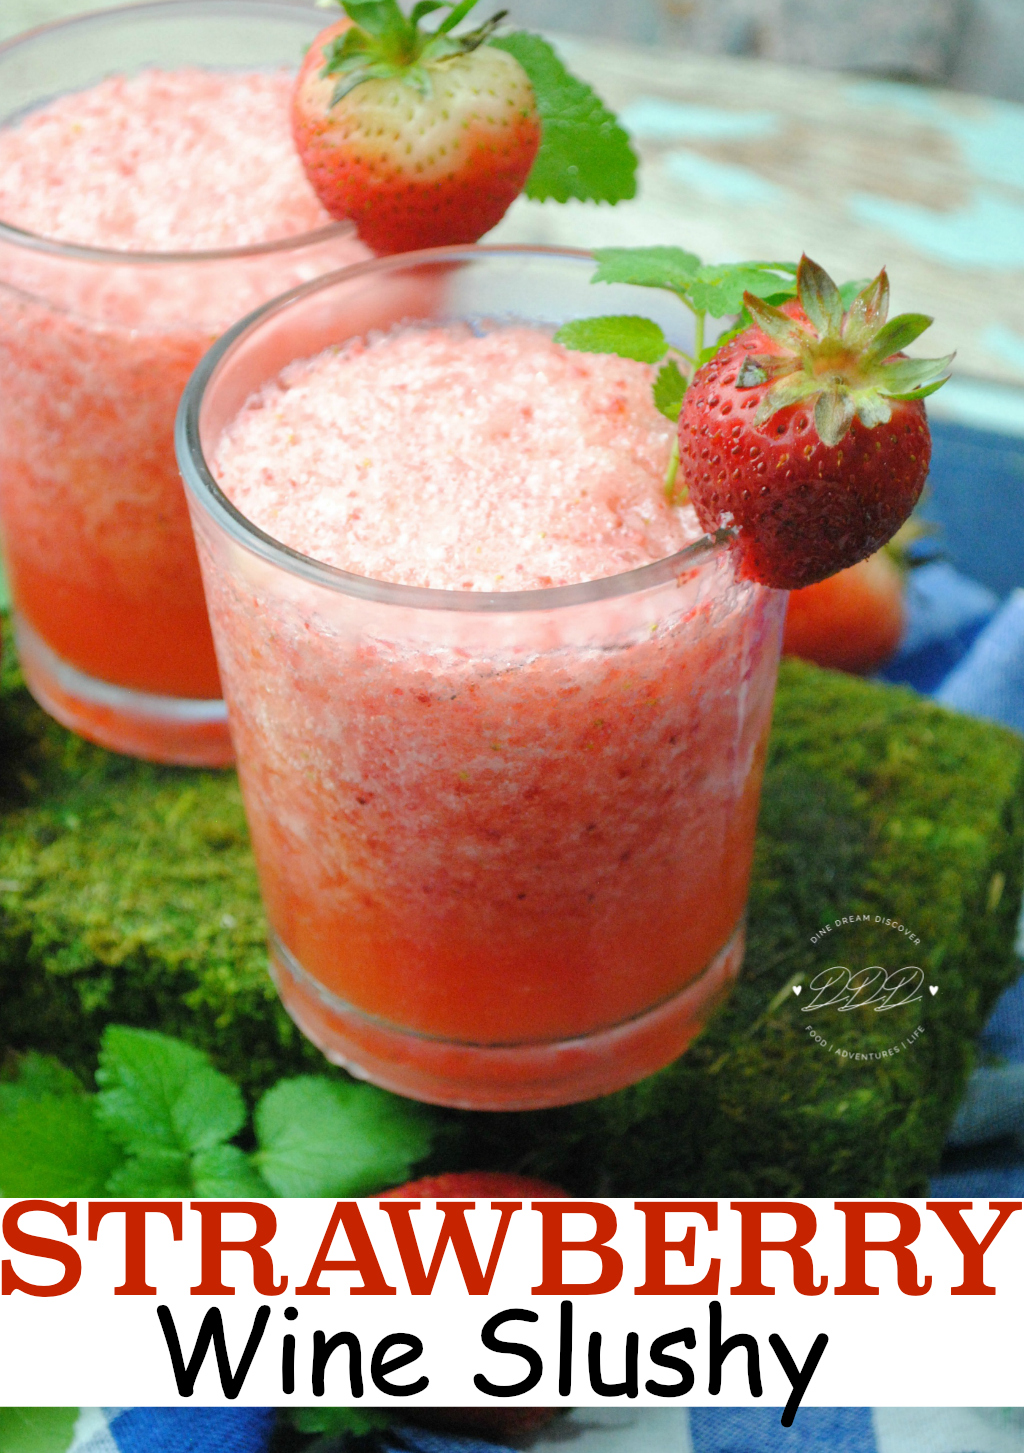 Tired of winter? Escape to a tropical oasis by making a frozen treat. The Strawberry Wine Slushy is a great way to forget about winter for a few hours.